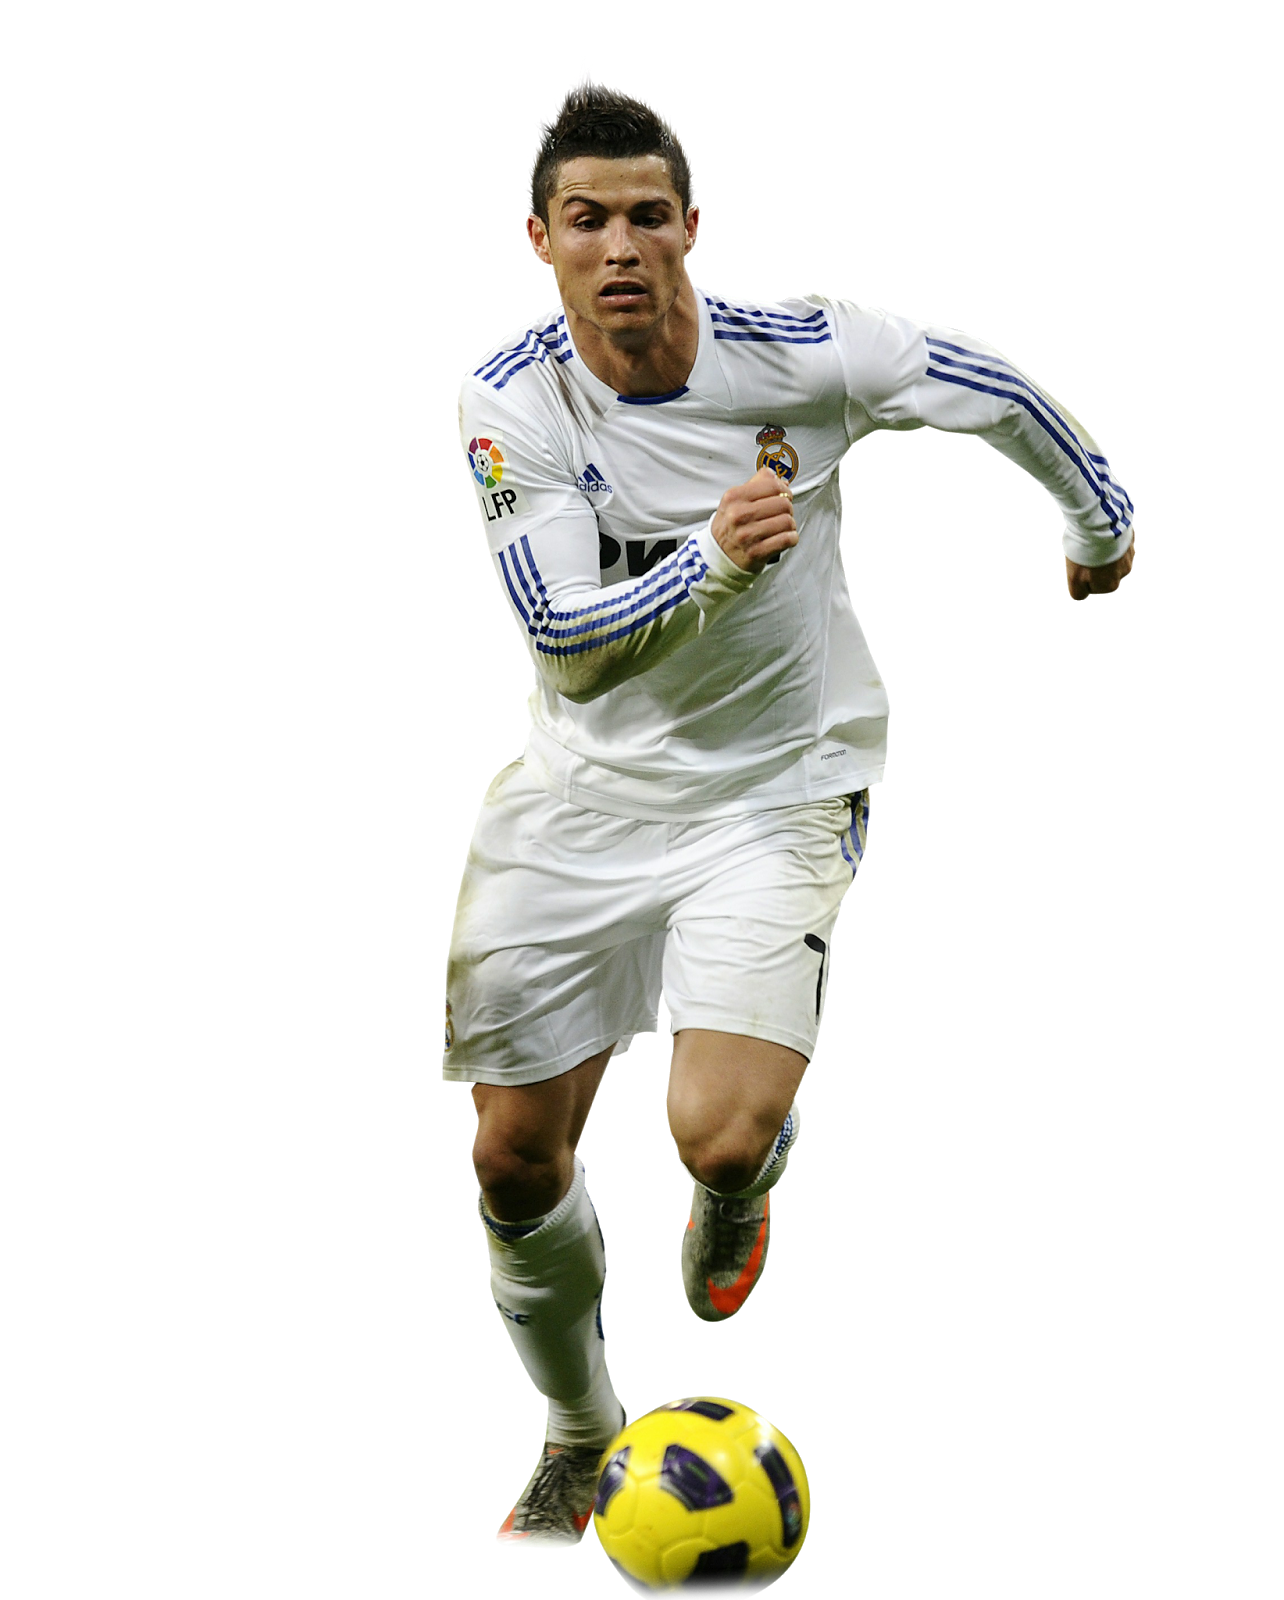 Cr7 png #45085.